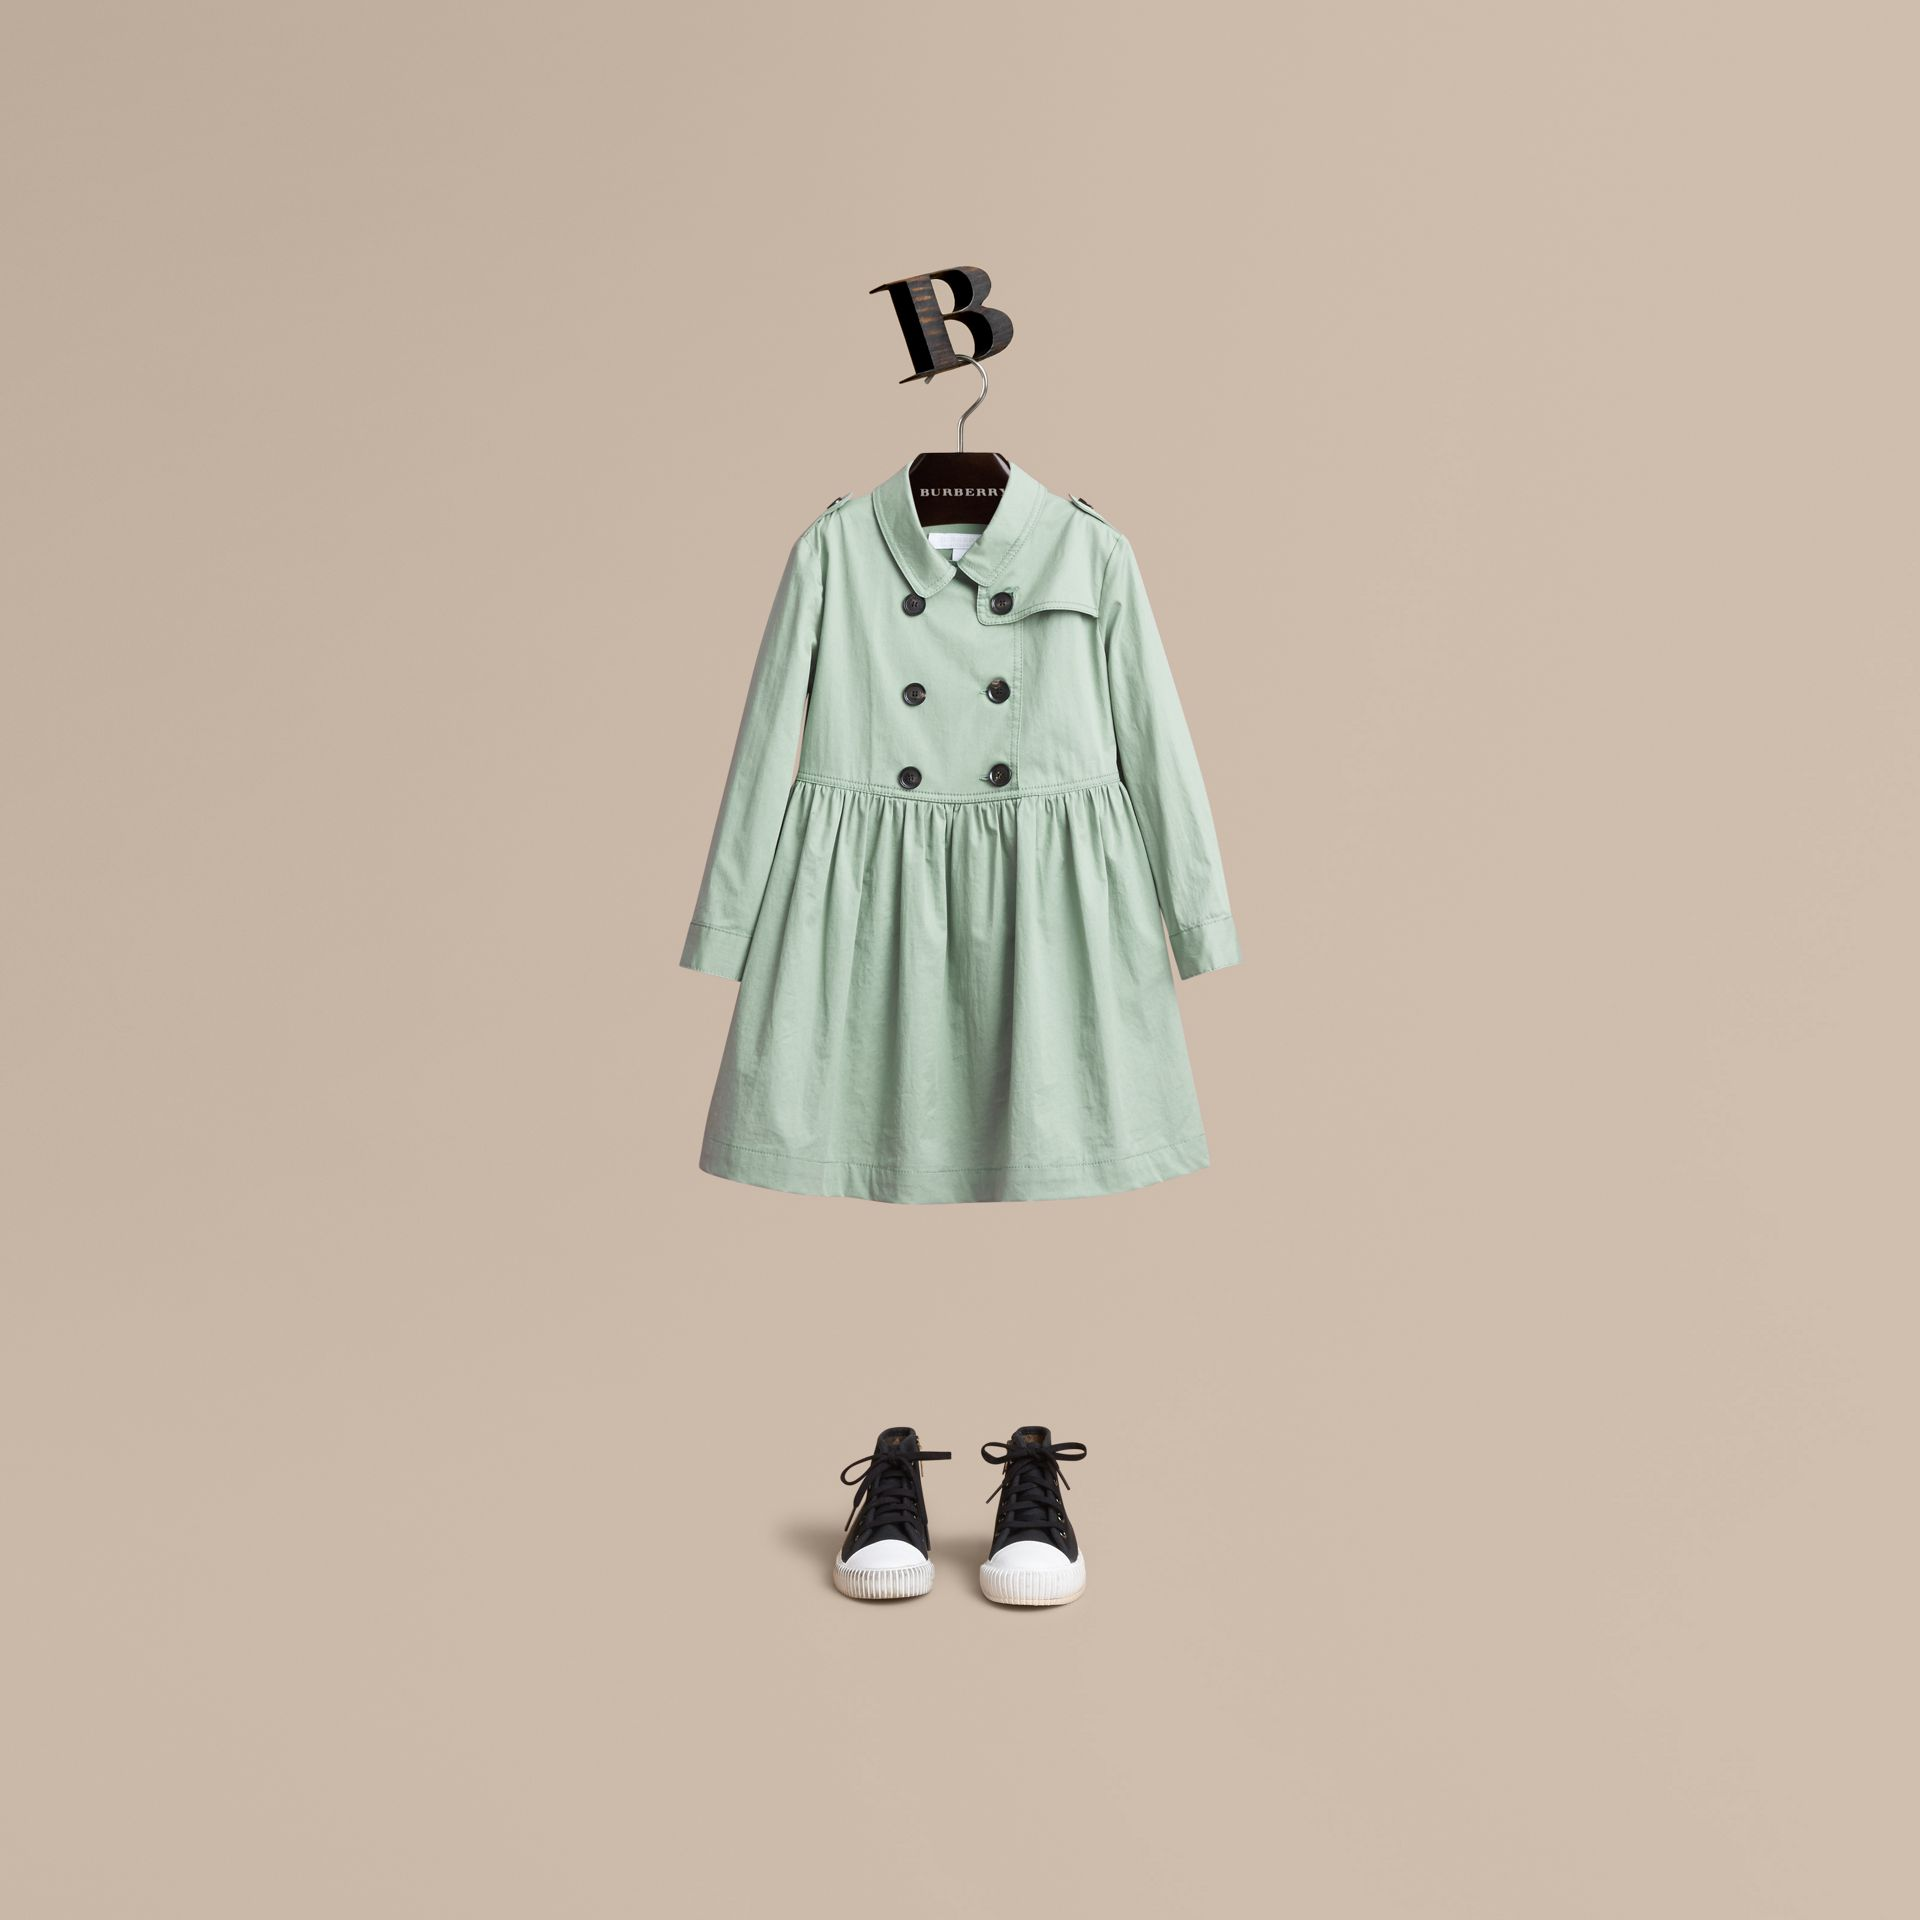 Robe trench en coton extensible avec éléments check (Vert Céladon) - Fille | Burberry - photo de la galerie 1